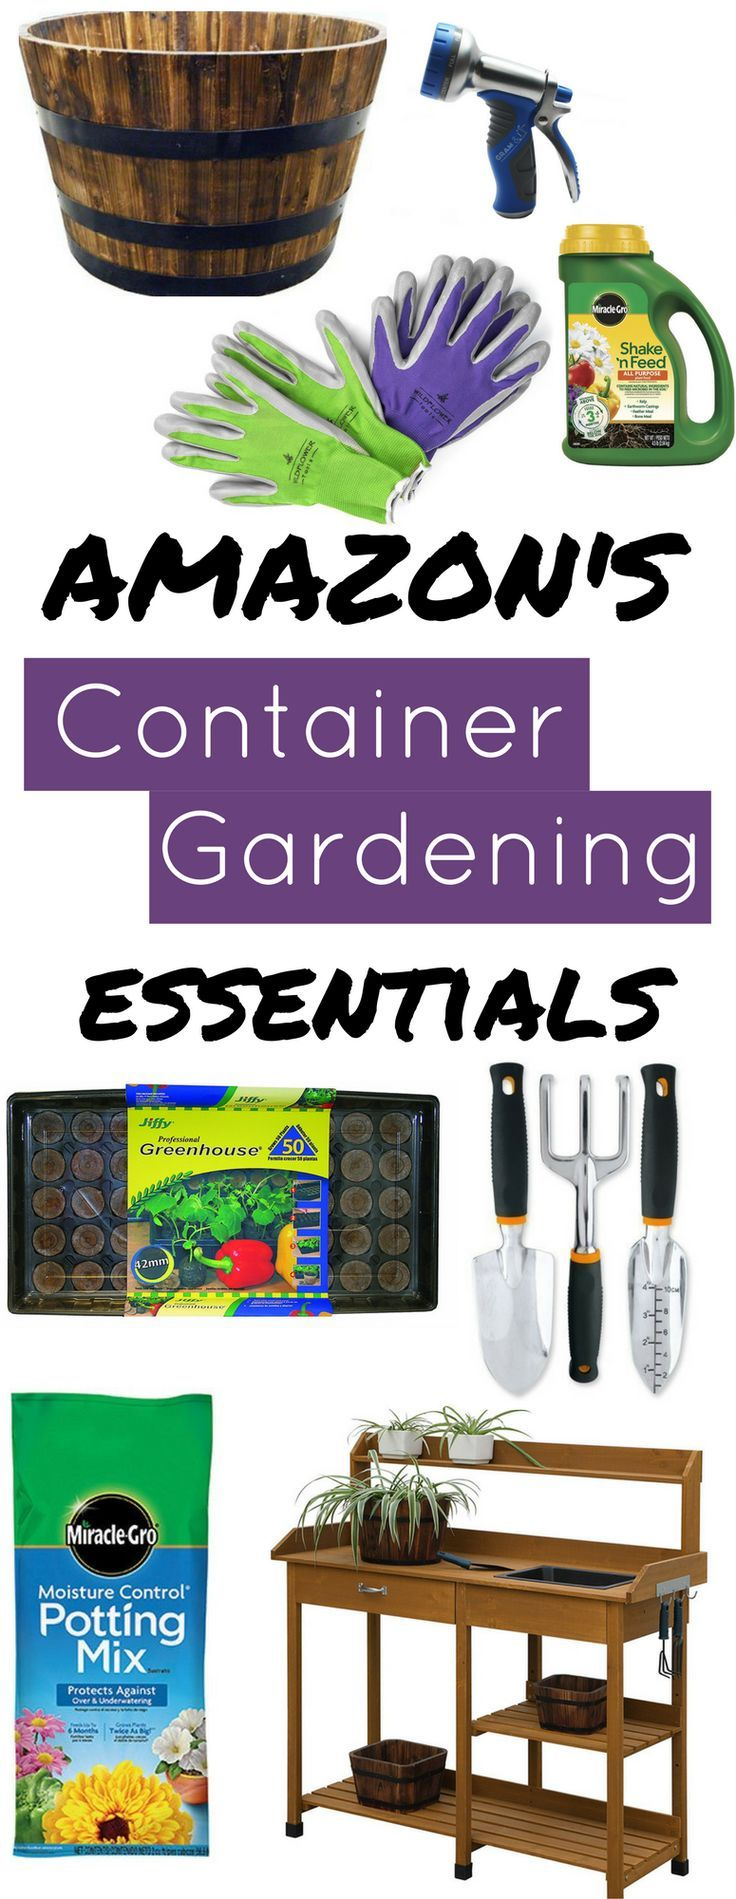 Container Gardening Essentials On Amazon Small Garden Essentials Container Gardening Garden Essentials